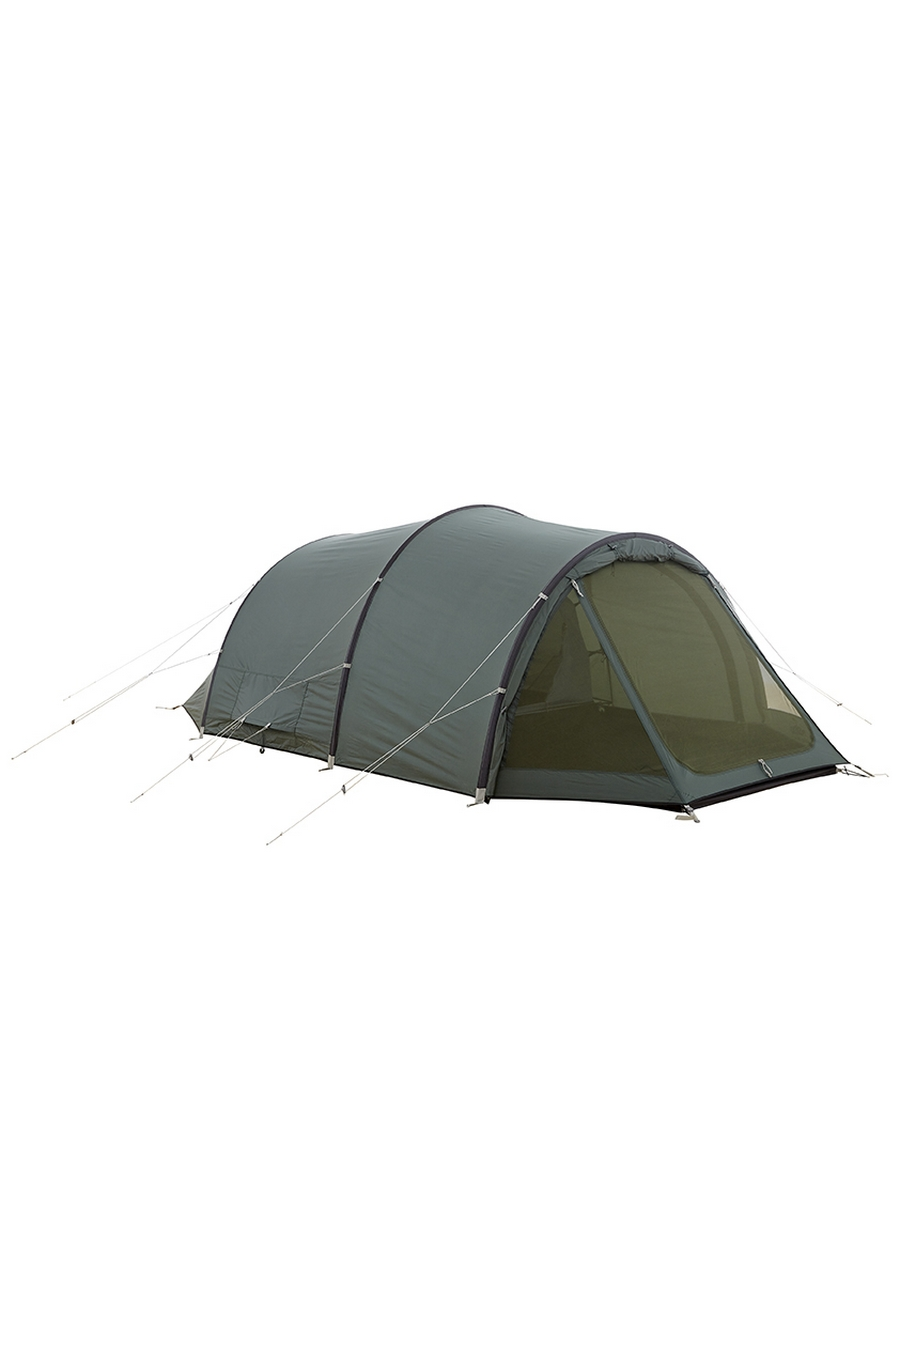 Nomad Valley View 3 Tent - 3 personen - Moss